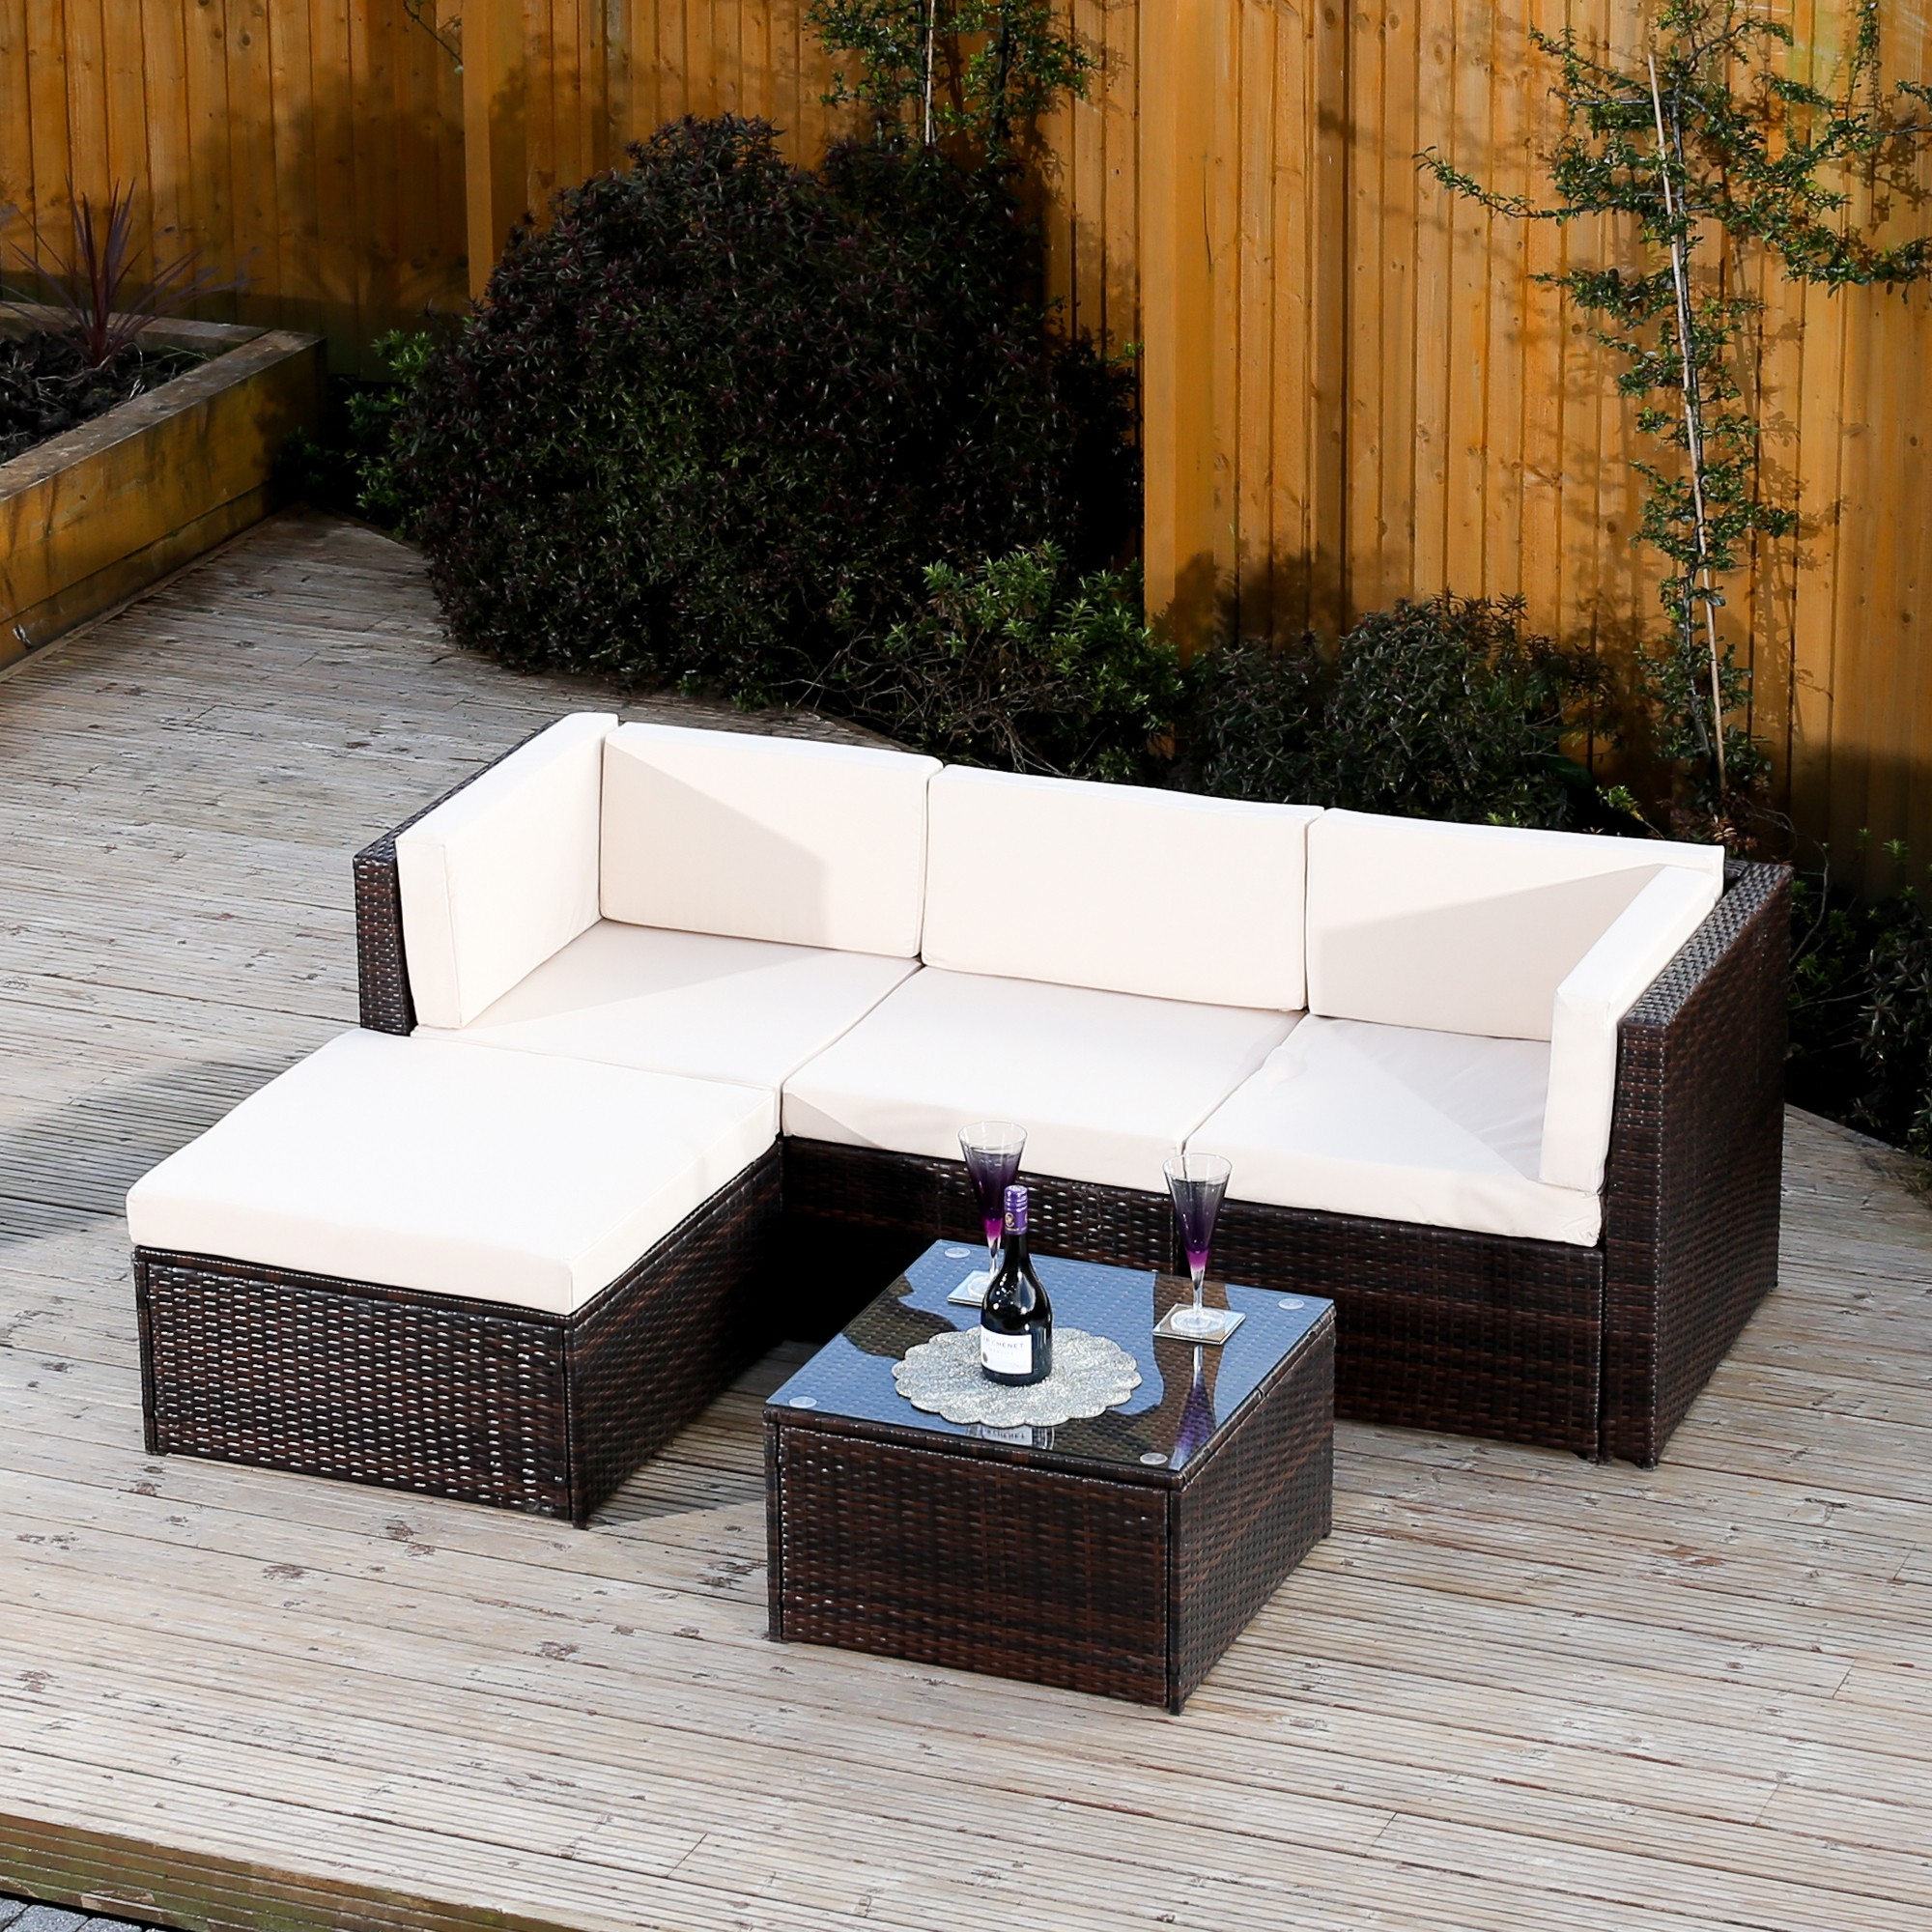 Milano Rattan 5 Piece Corner Sofa In Brown Or Black Abreo